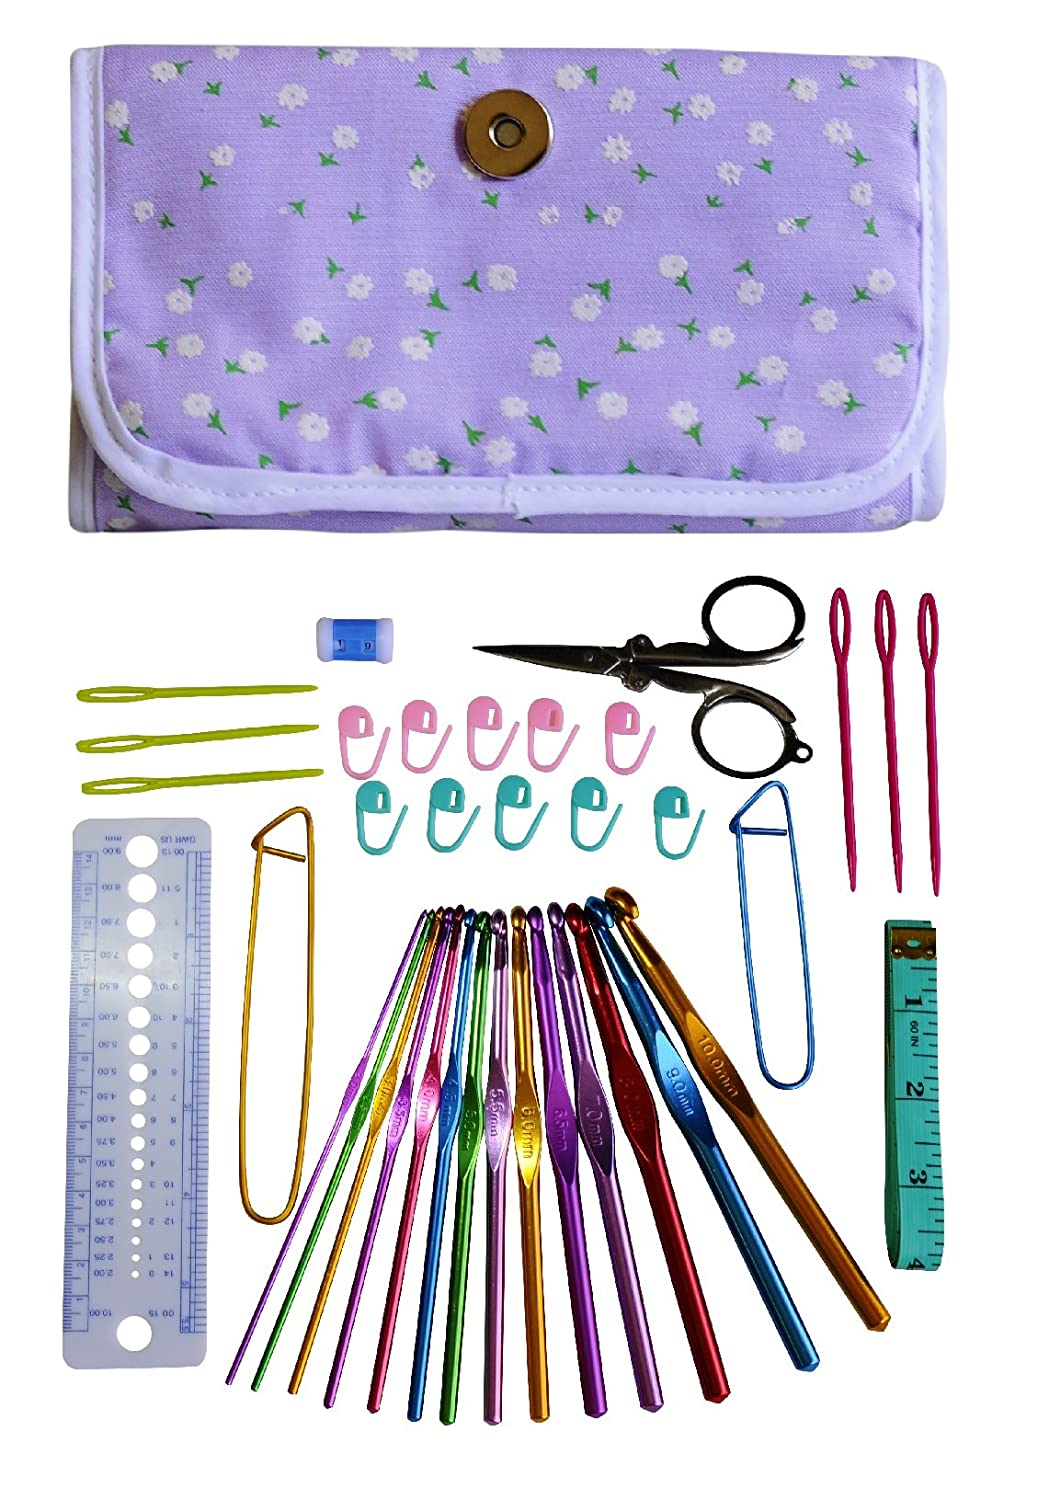 DELUXE CROCHET KIT – 37 Items with 14 Crochet Hooks (Sizes